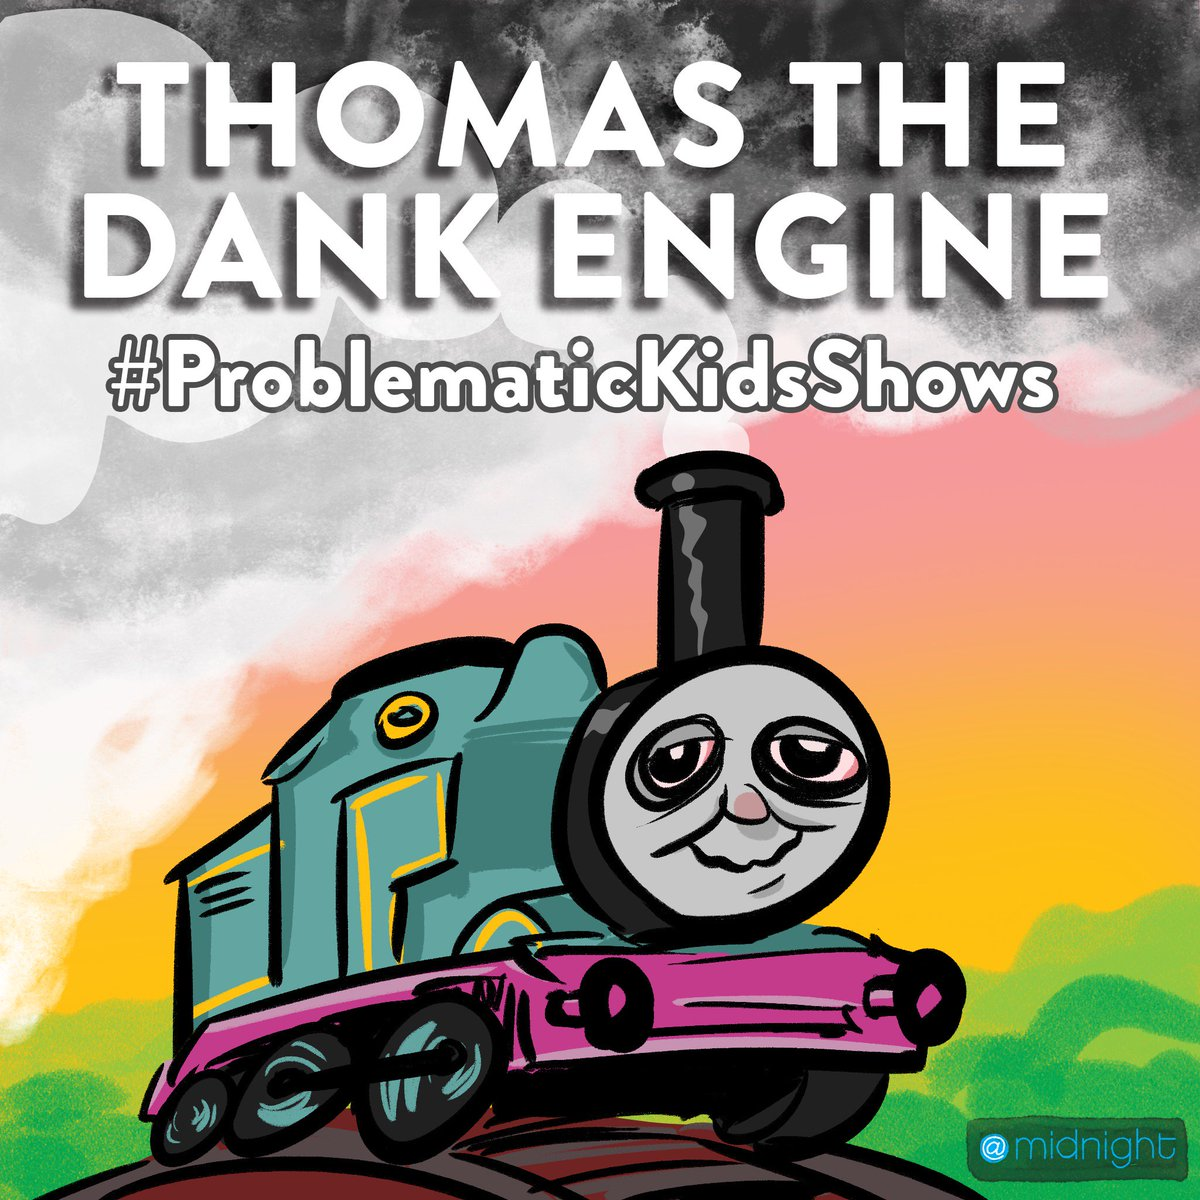 All aboard! #ProblematicKidsShows @midnight https://t.co/qsvgpLECAG